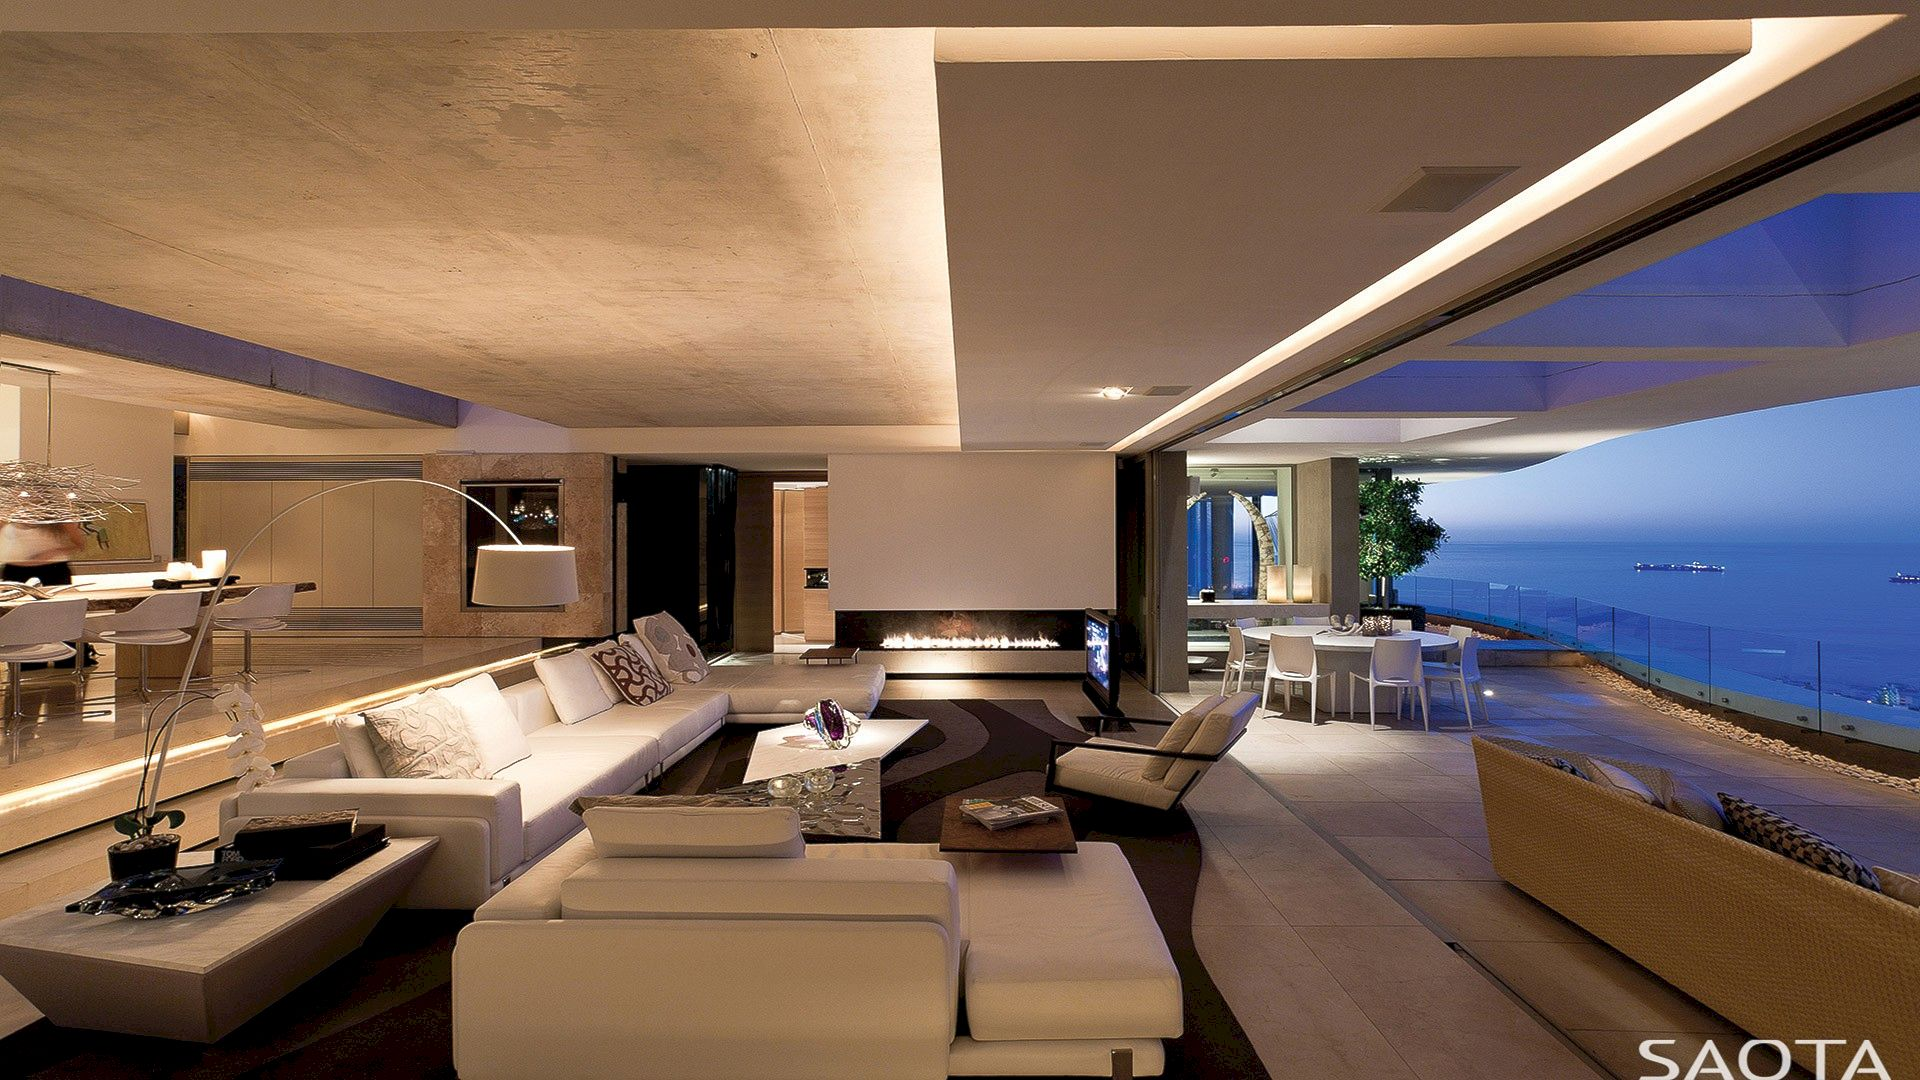 LGV 5 By SAOTA Architecture And Design 7